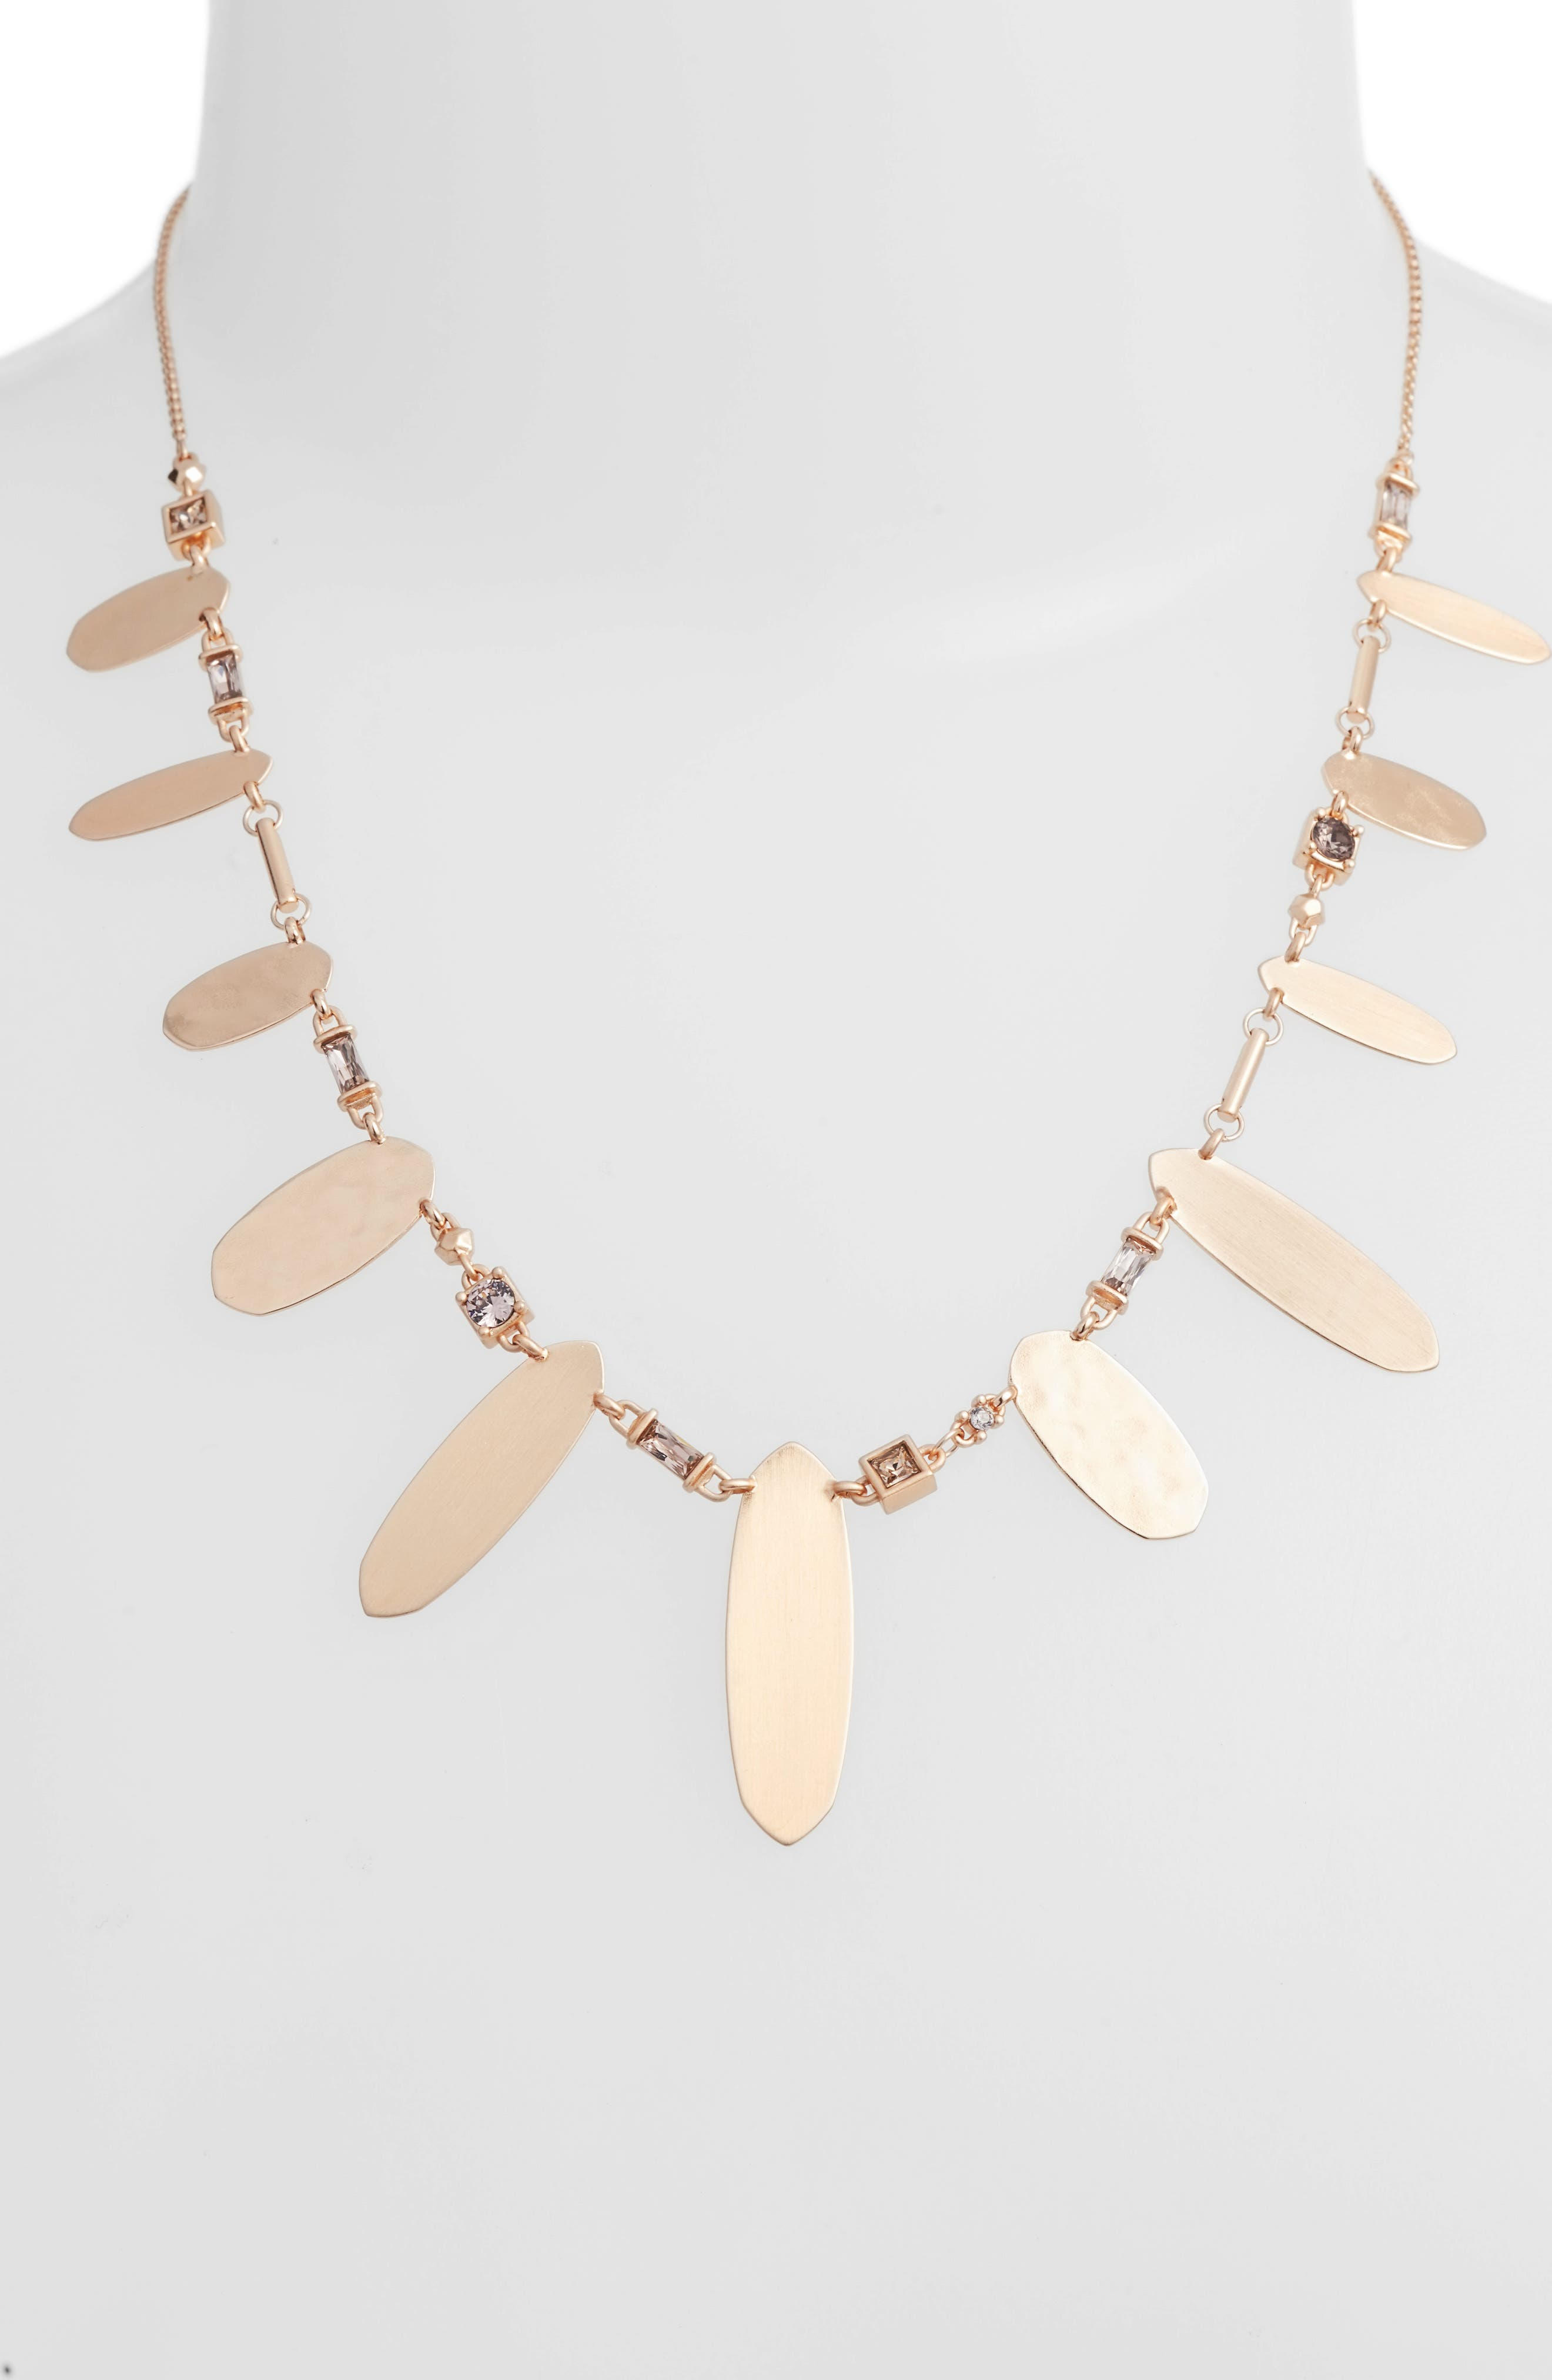 Airella Necklace,                             Alternate thumbnail 2, color,                             650